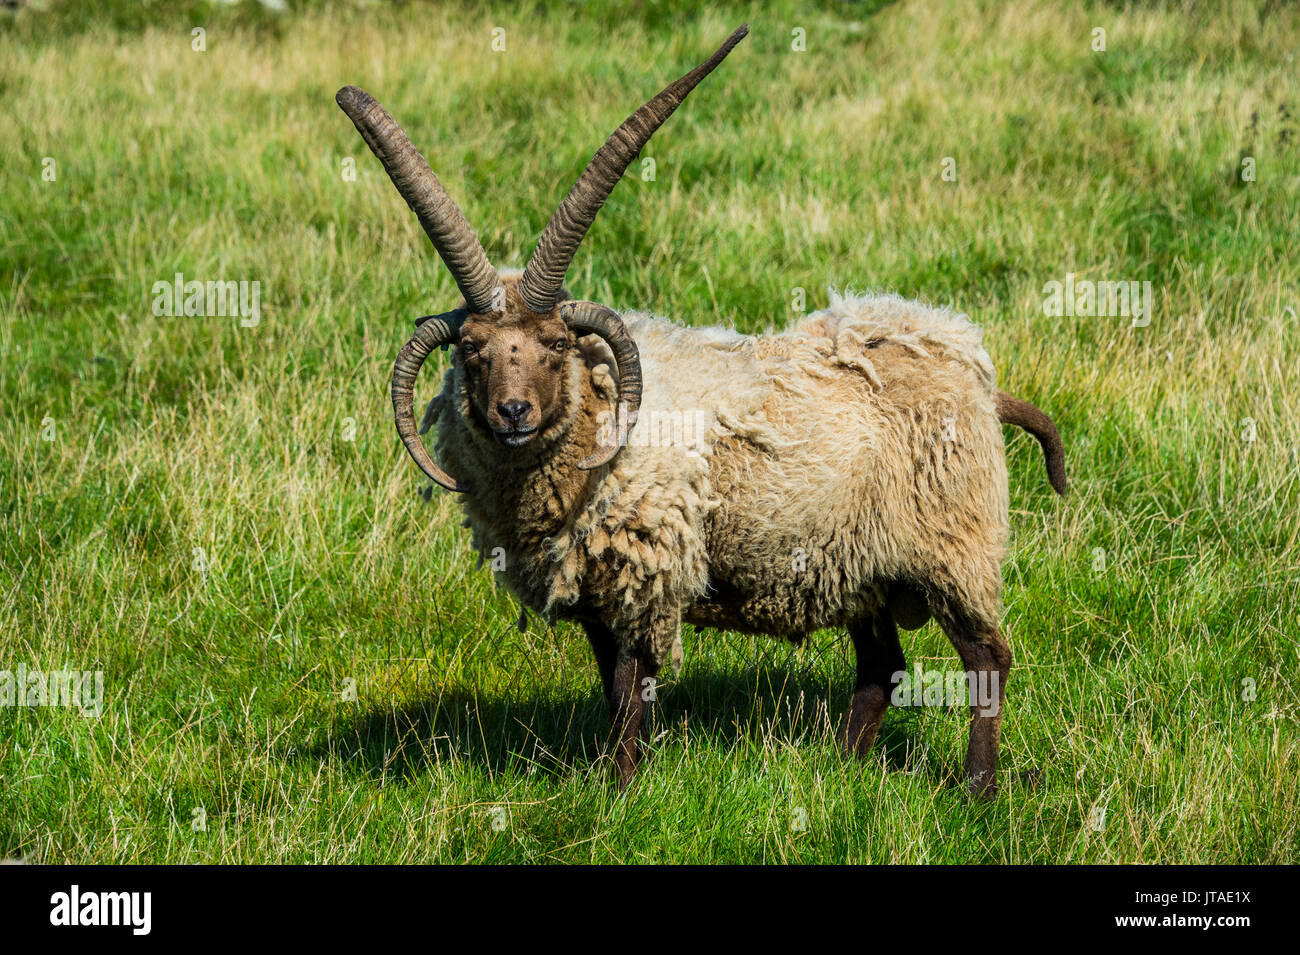 Four-horned Manx Loaghtan sheep (Ovis aries) in the living museum Cregneash village, Isle of Man, crown dependency of the UK - Stock Image